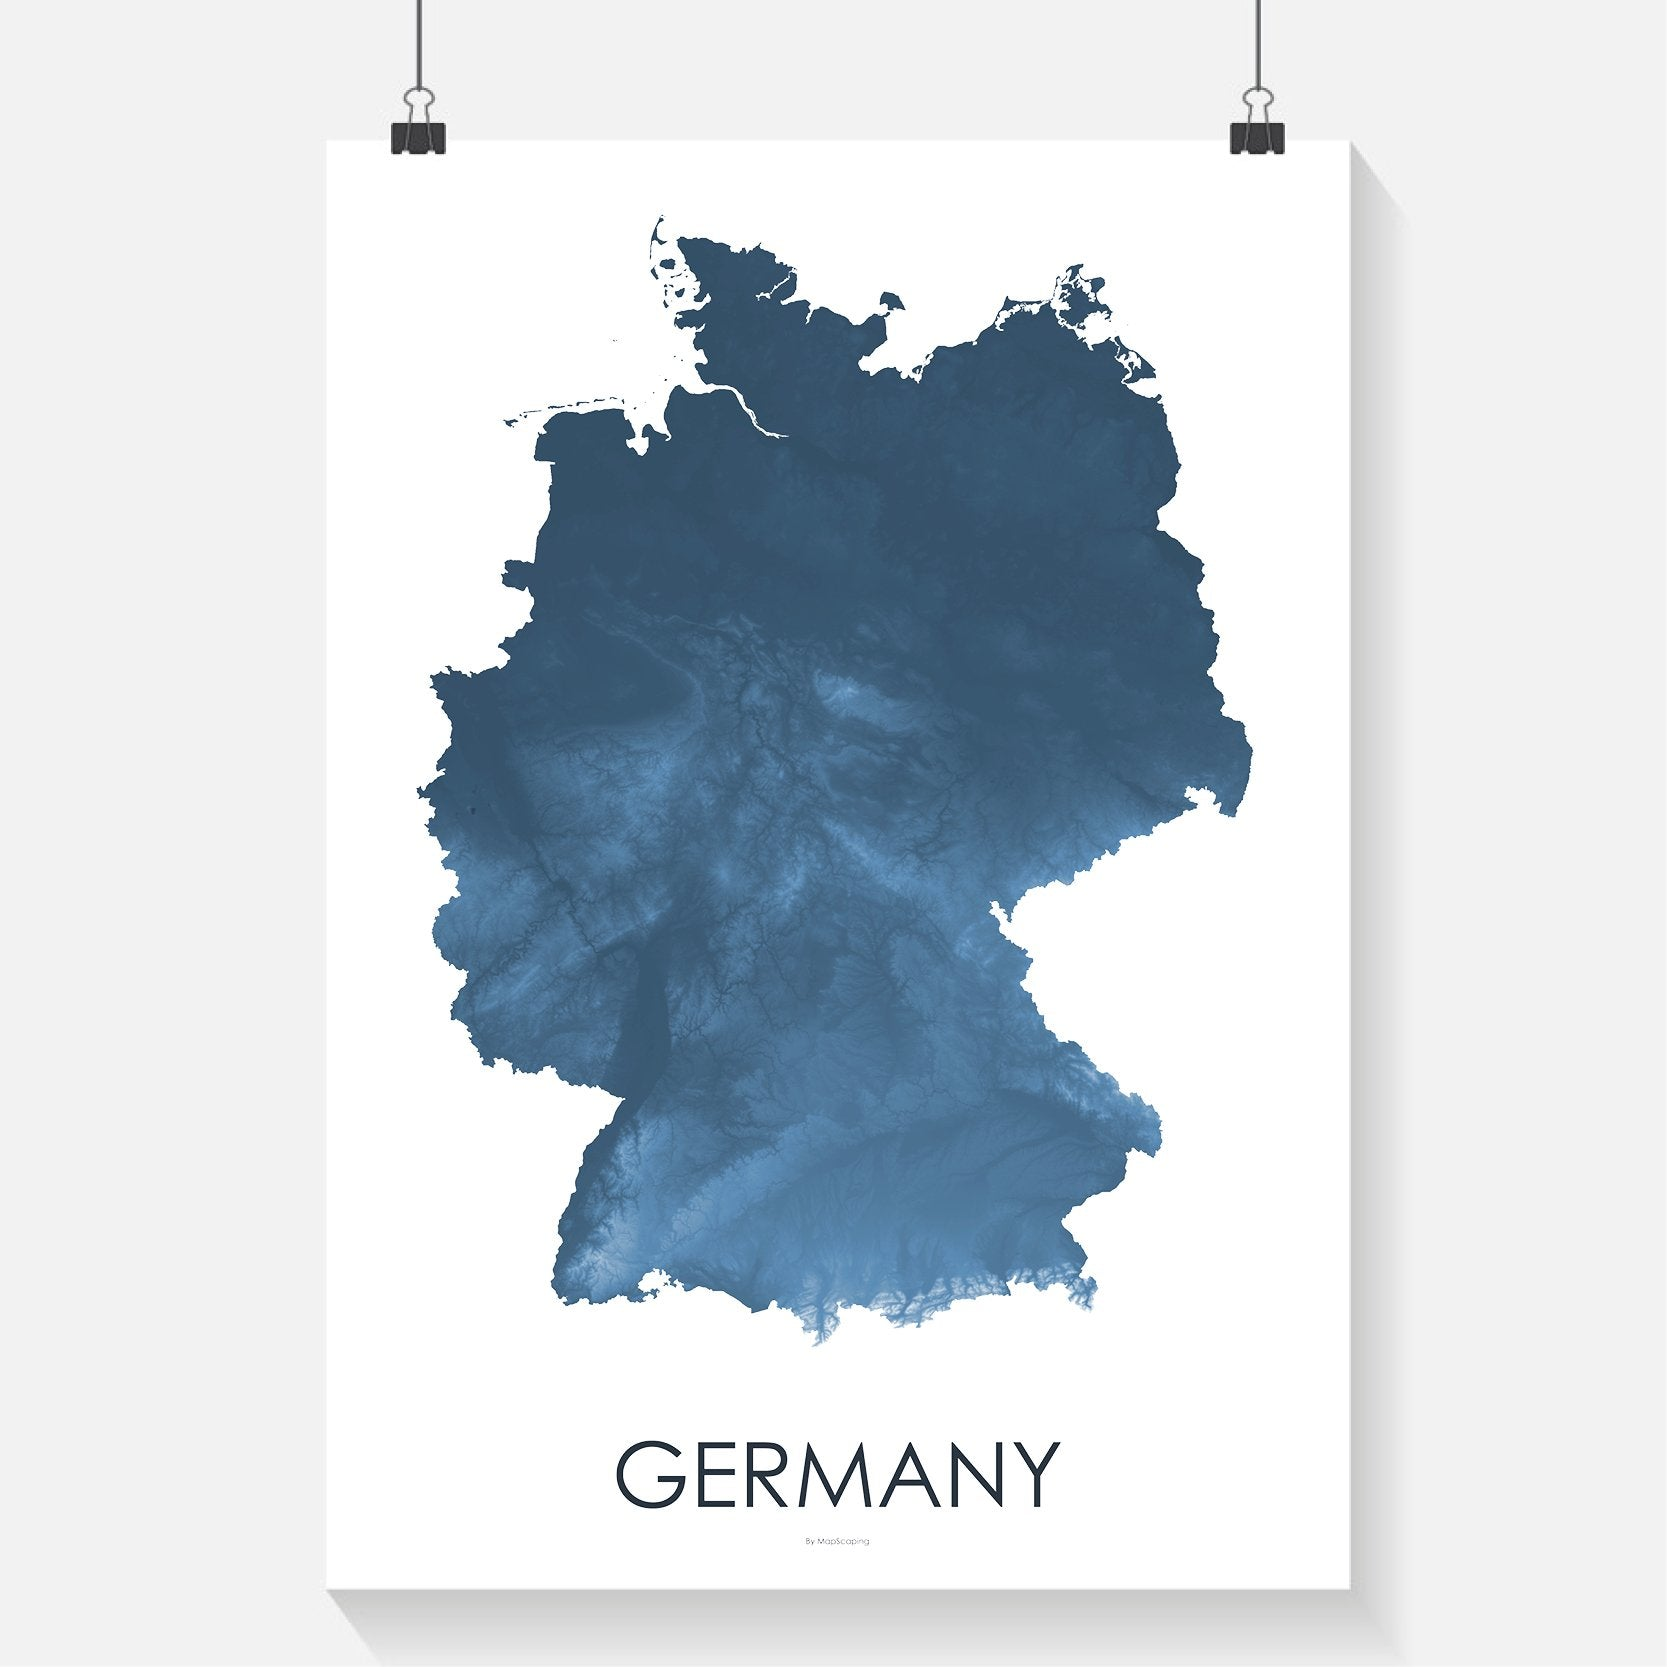 Topographic Map Germany.Germany Topographic Wall Art Map Mapscaping Com Topographic Map Art